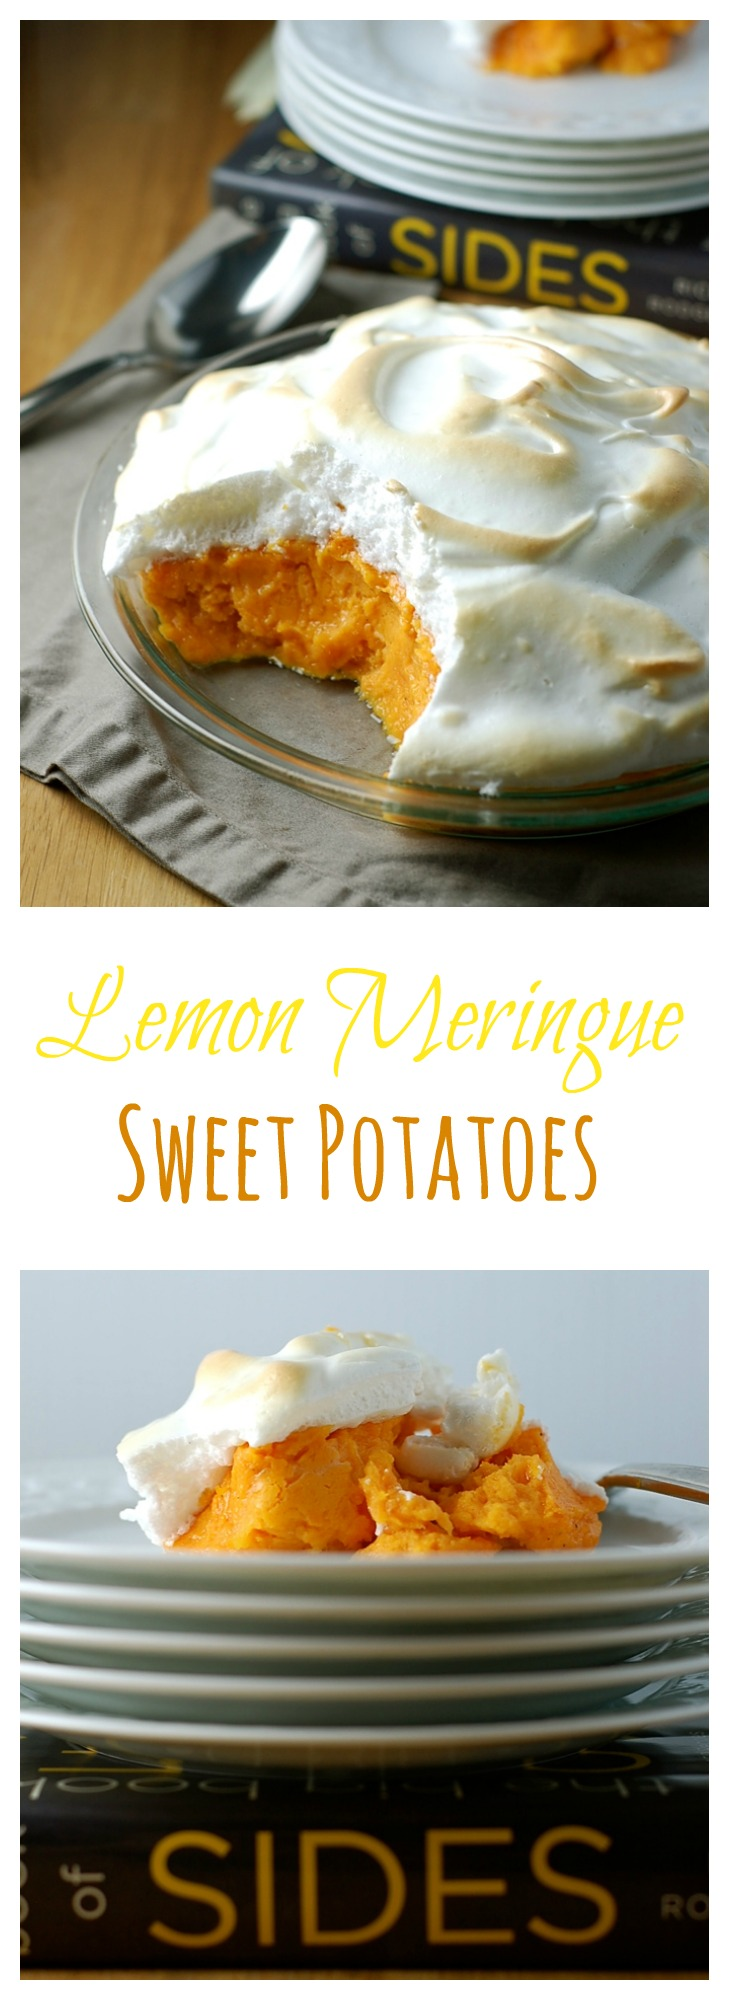 Lemon Meringue Sweet Potatoes